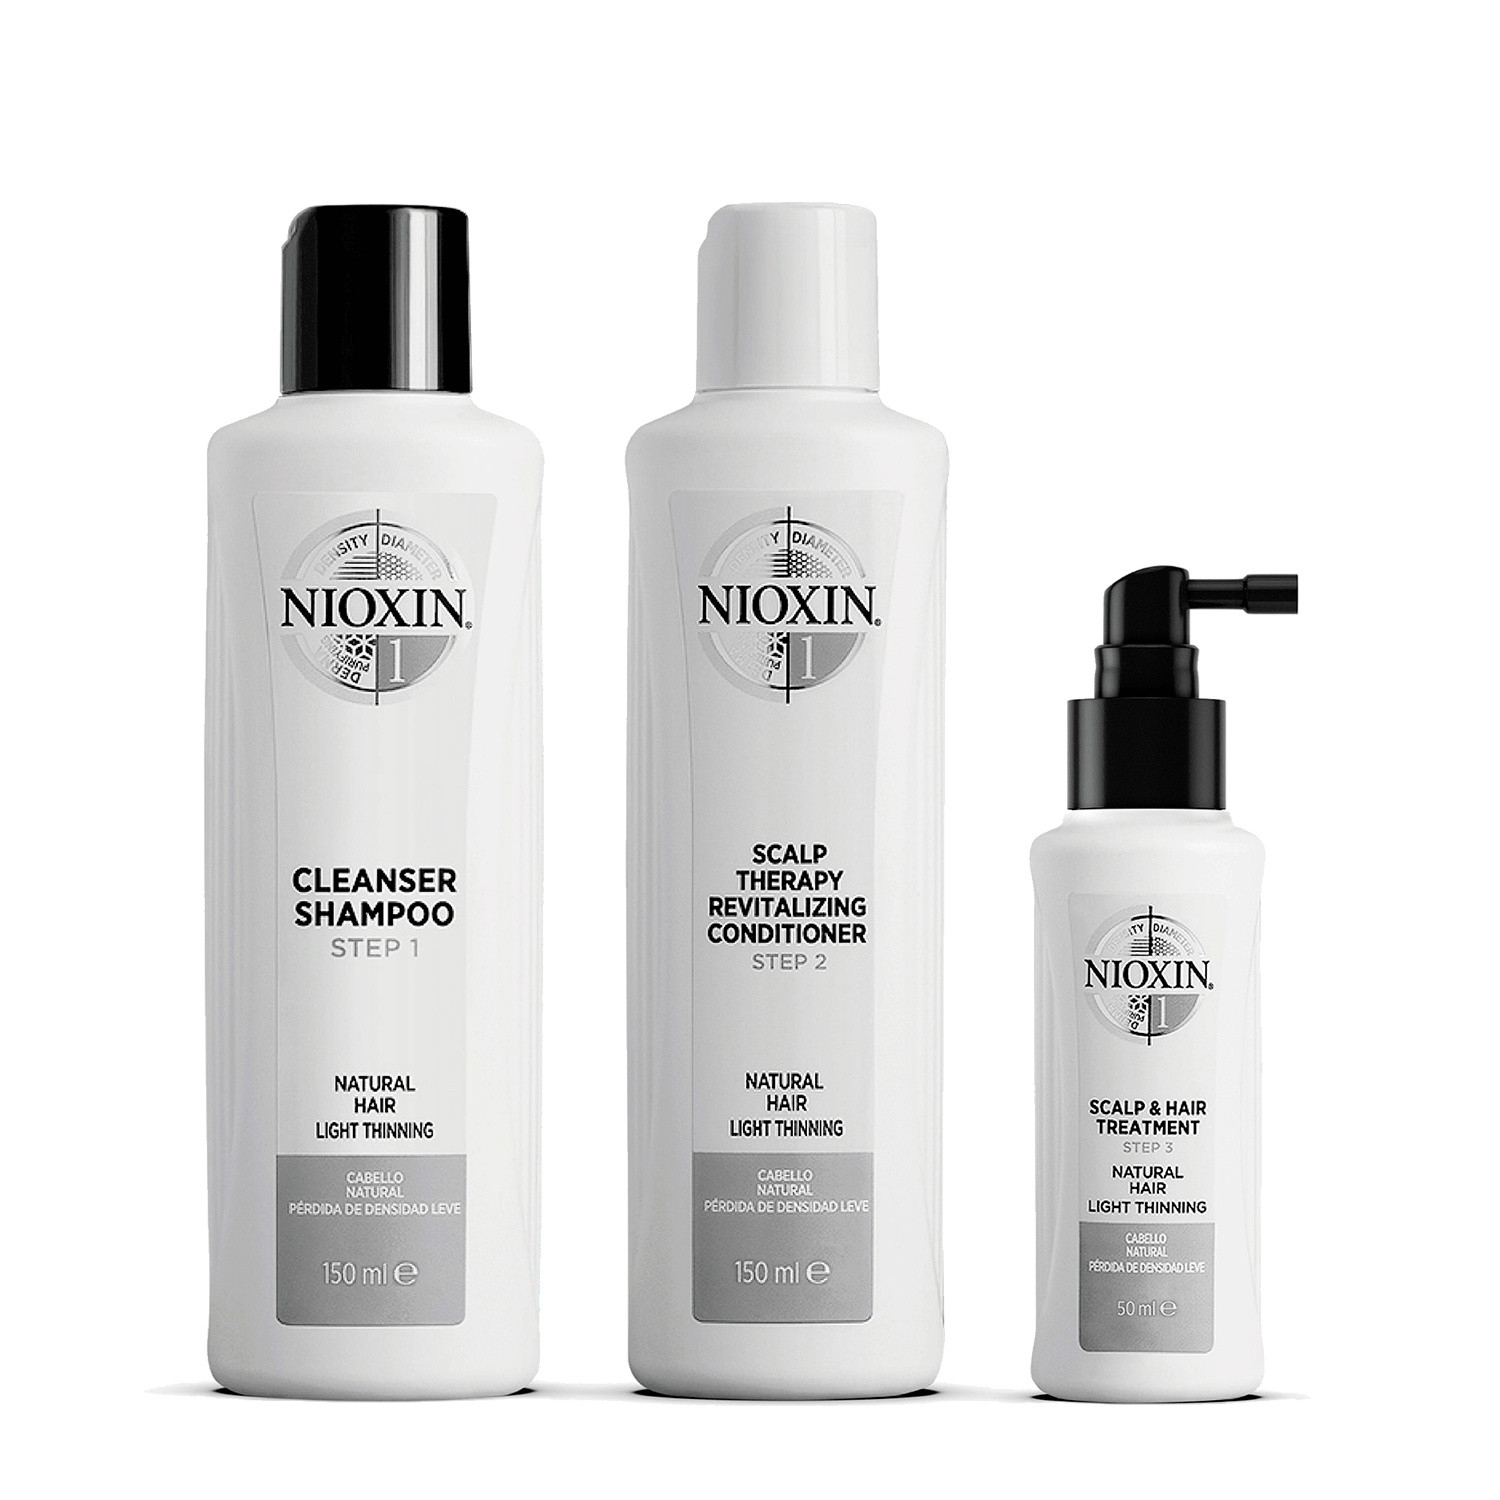 Nioxin 3 Part System 1 Trial Kit for Natural Hair with Light Thinning